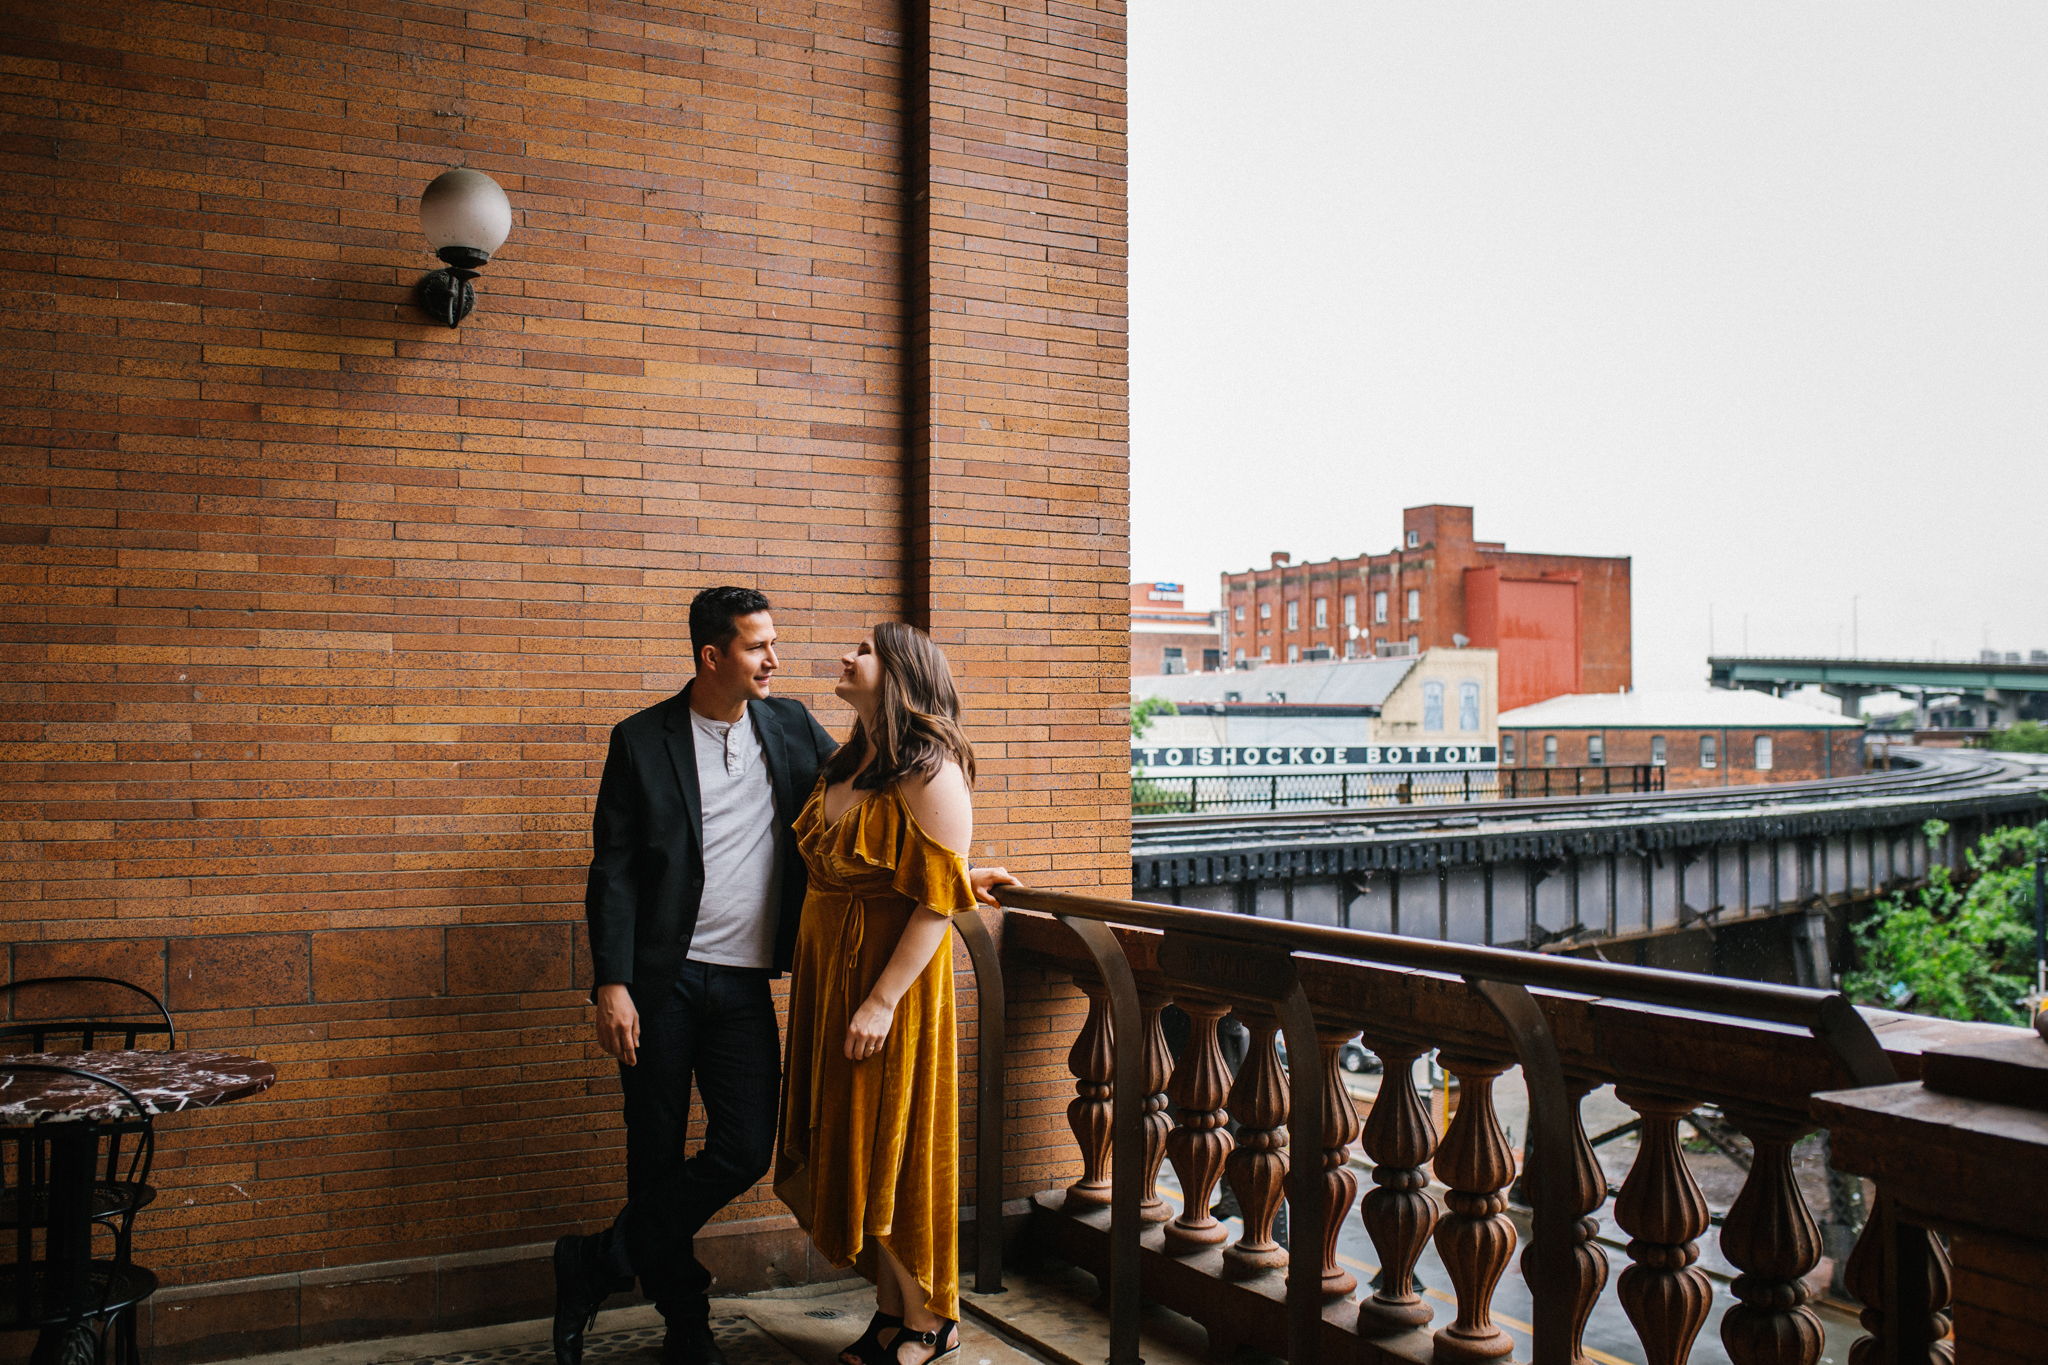 rachel_alex_richmond_engagement_session_mainstreetstation_rebeccaburtphotography-18.jpg